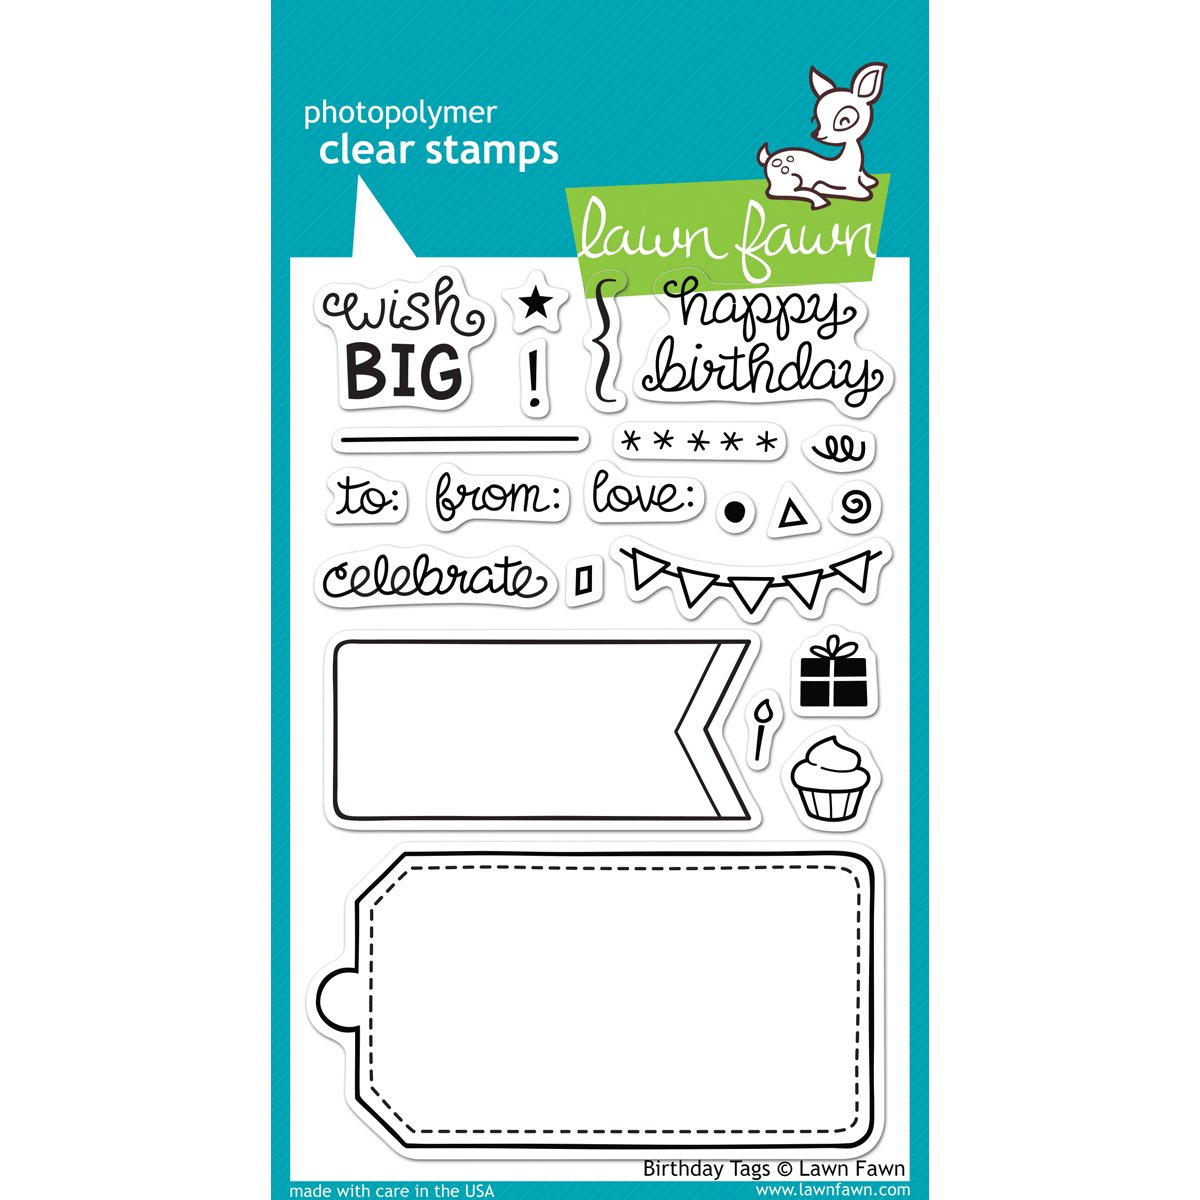 Lawn Fawn Clear Stamps - Birthday Tags #LF663 1 sheet happy birthday silicone clear stamps for party decoration rubber stamps for crafts and scrapbooking free shipping 68508